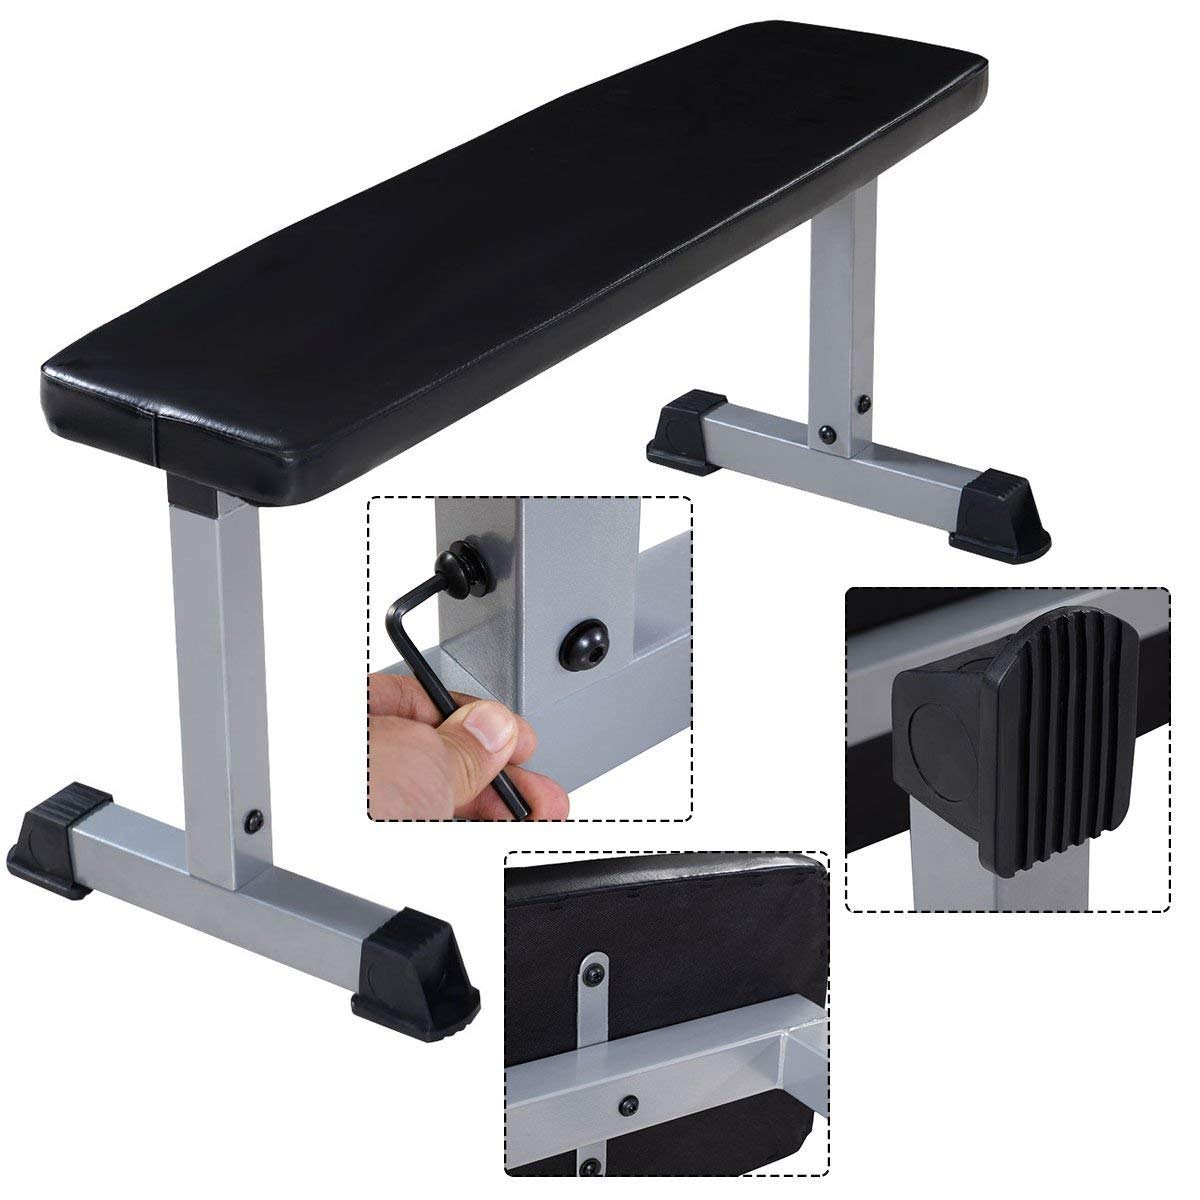 GYMAX Weight Bench, Flat Weight Bench Utility Workout Bench Sit Up Crunch Board for Home Gym Exercise Fitness Strength Training by GYMAX